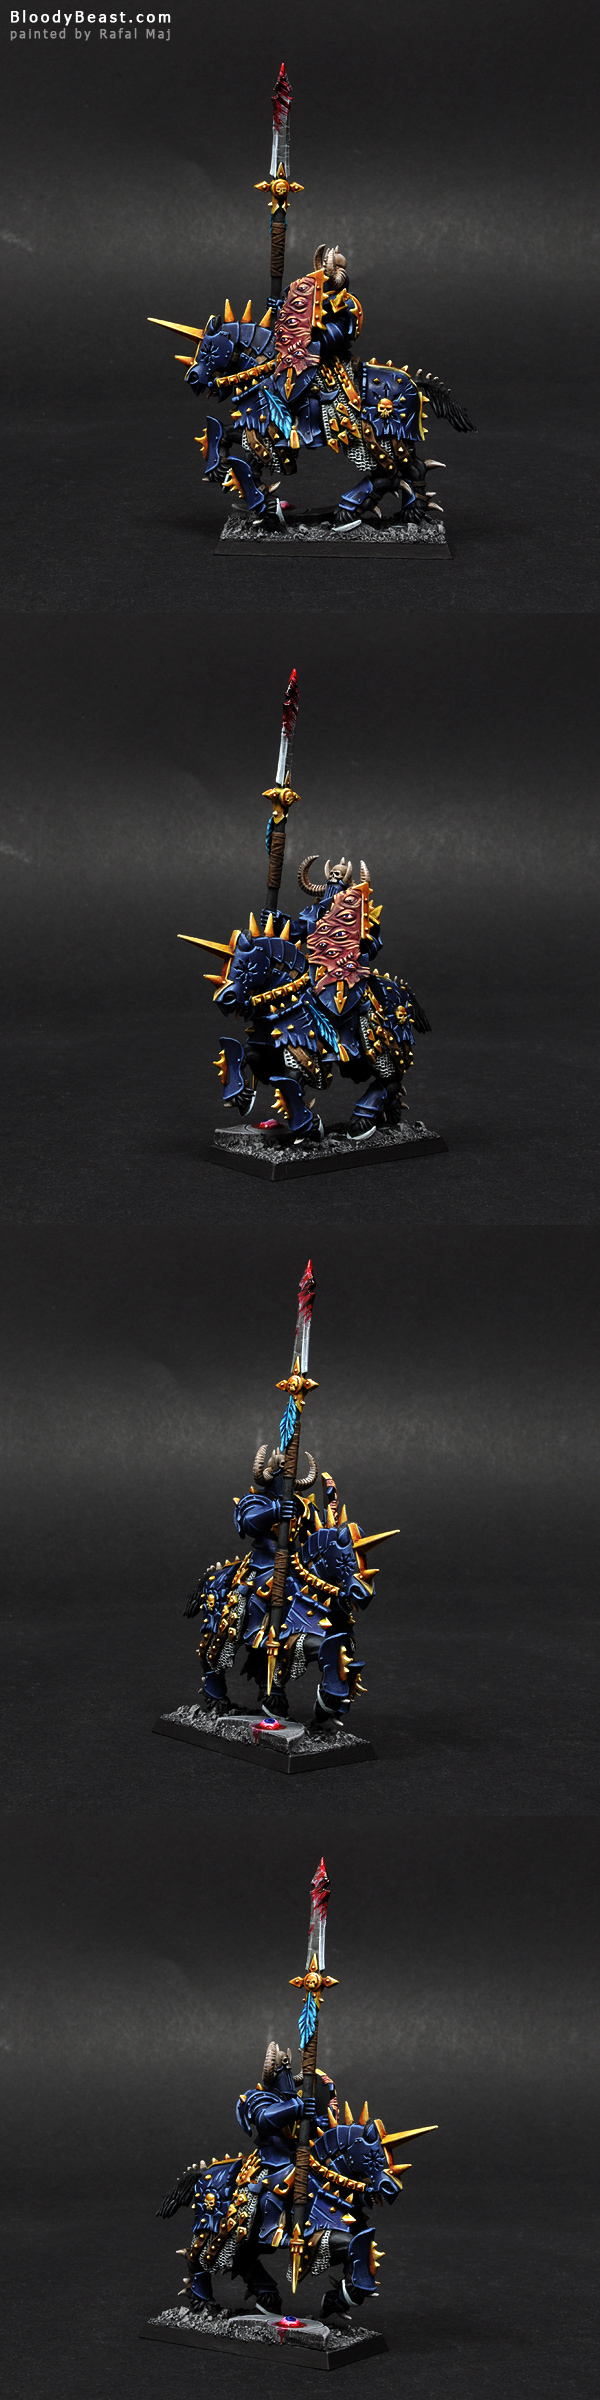 Chaos Knight of Tzeentch painted by Rafal Maj (BloodyBeast.com)